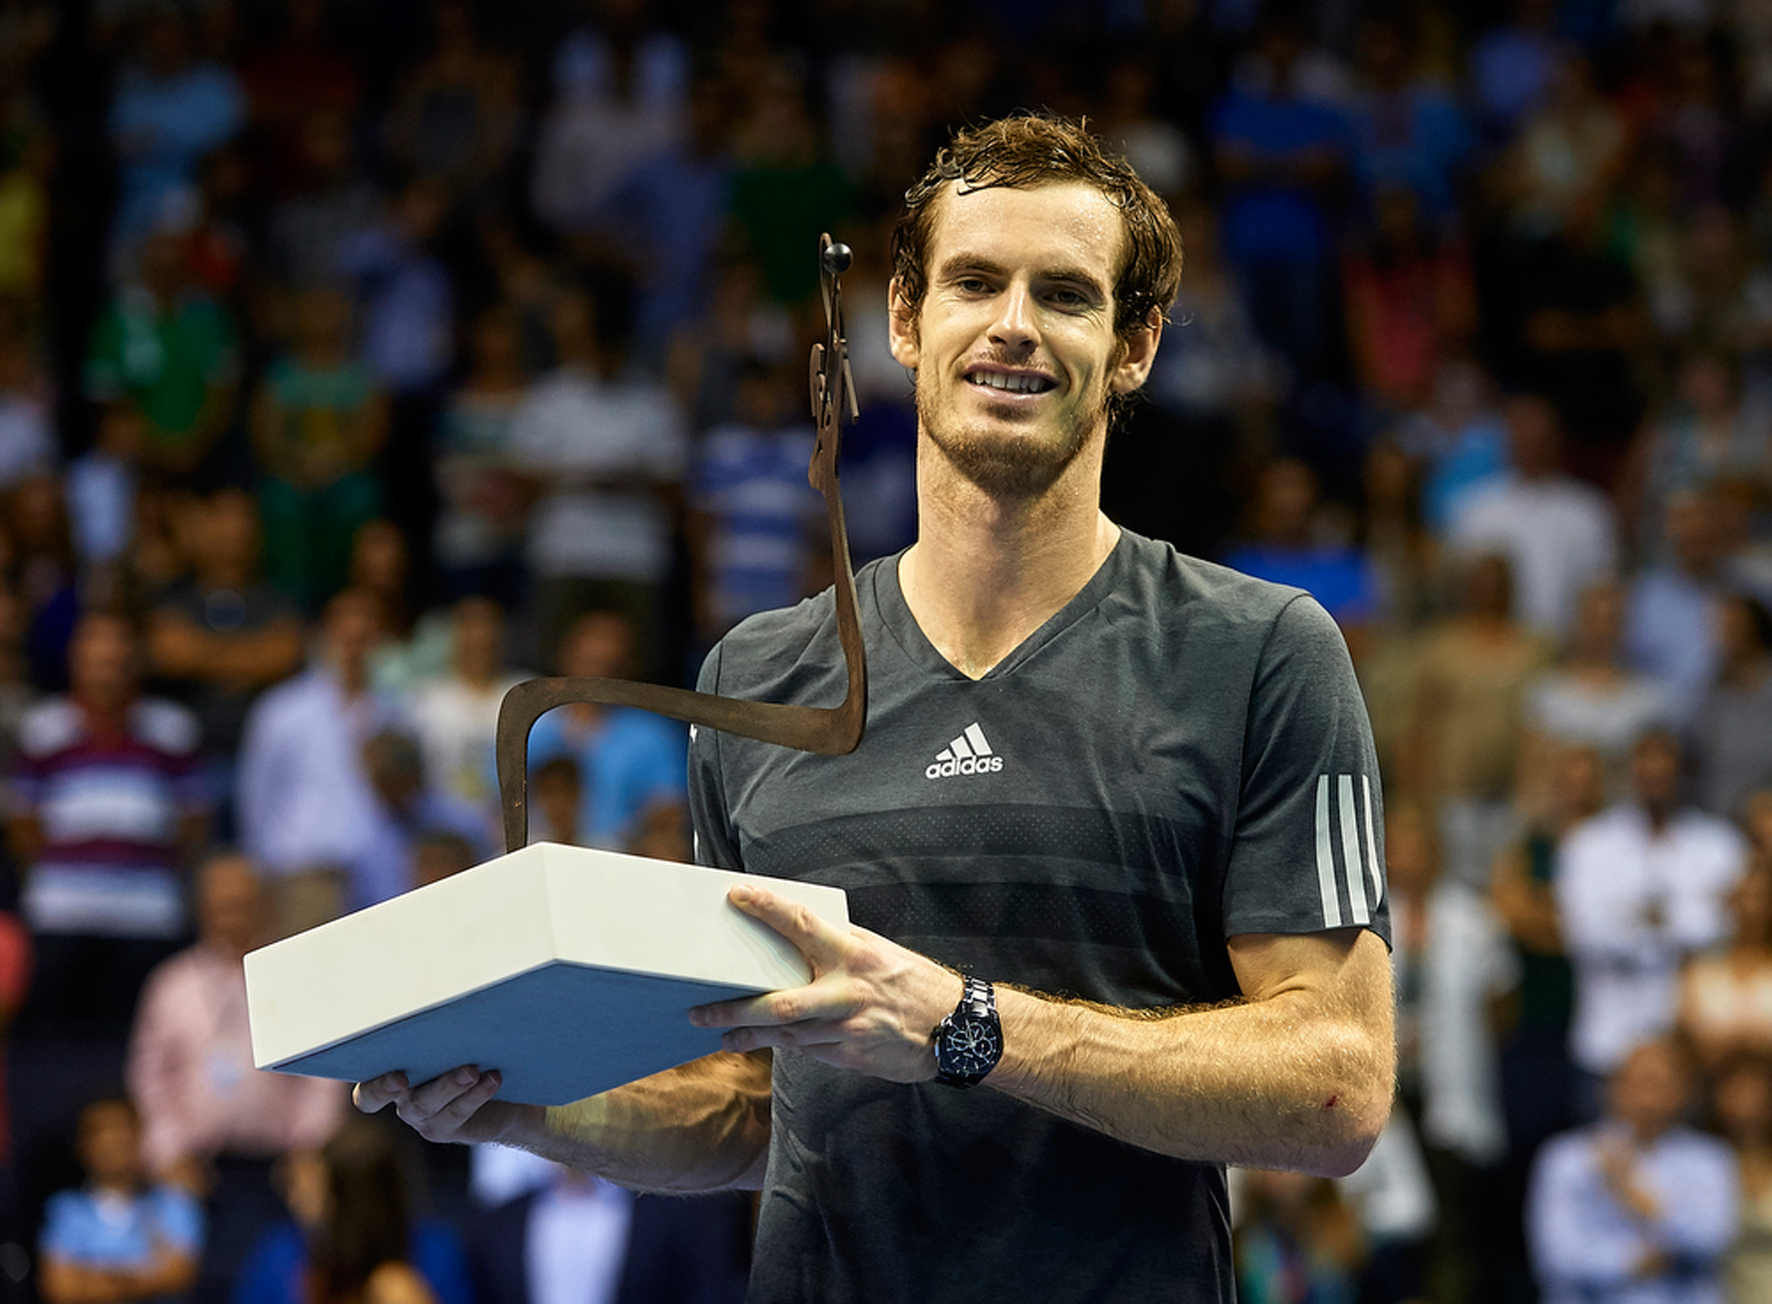 HEAD Murray Valencia trophy ANDY MURRAY CLOSE TO BARCLAYS ATP WORLD TOUR  FINALS AFTER WINNING IN VALENCIA